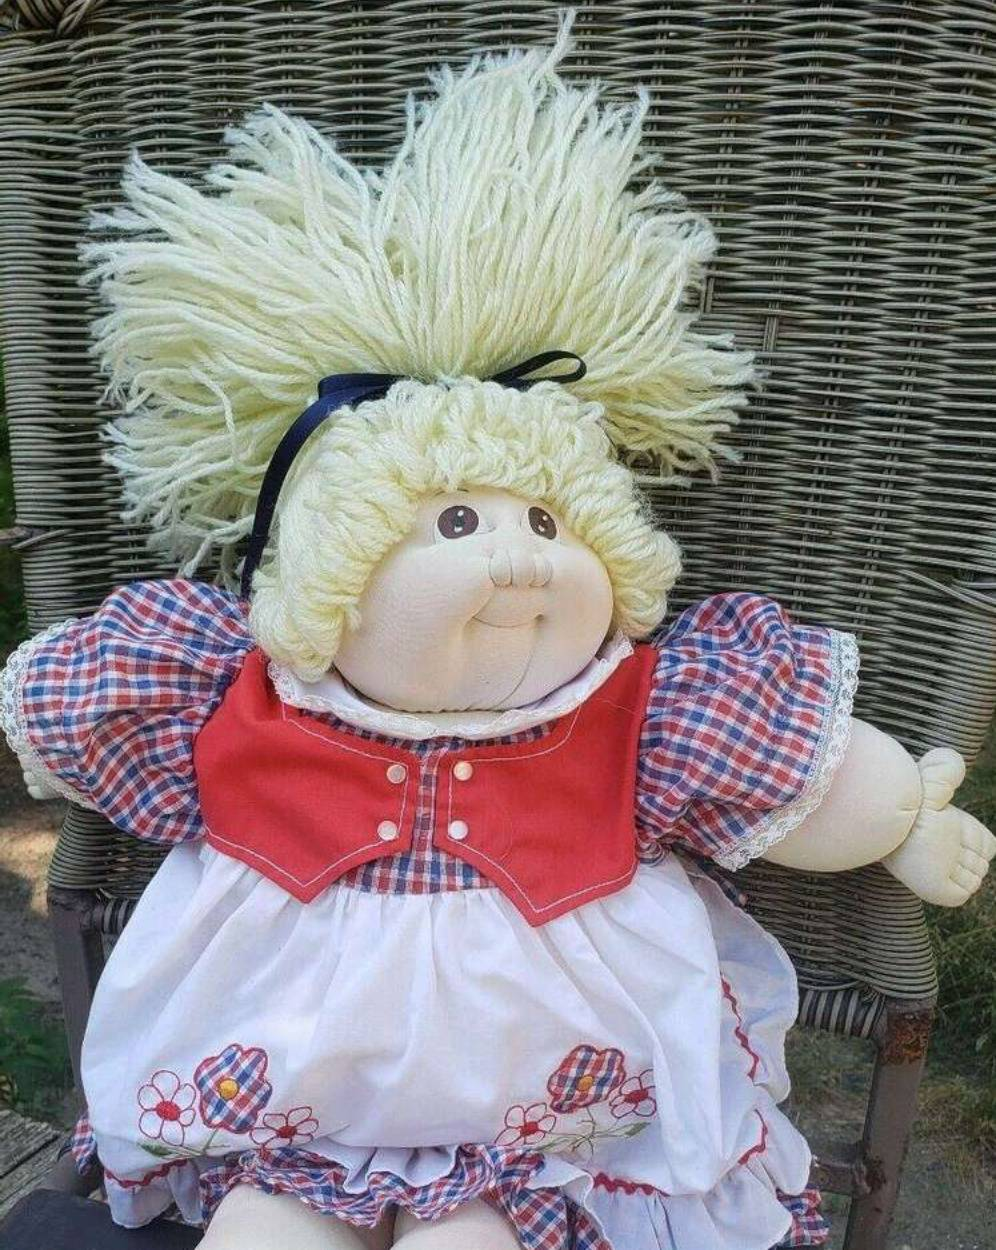 A blonde Little People Doll sits on a wicker chair.